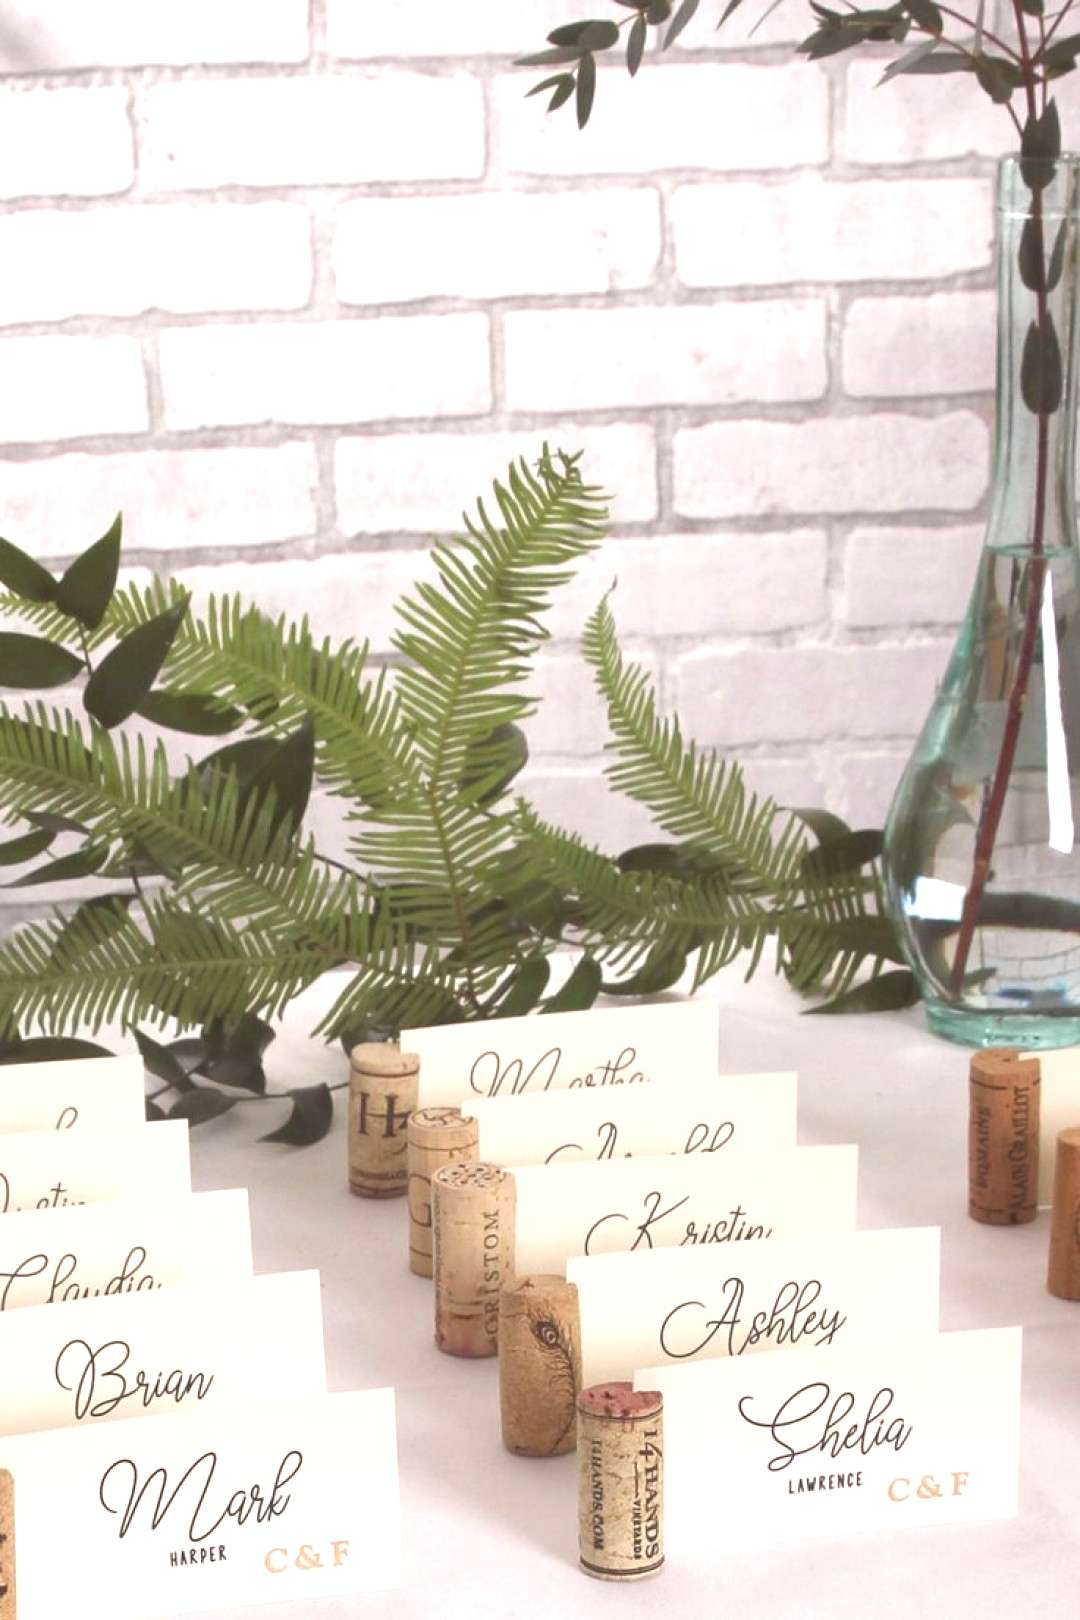 Heres a pretty wedding DIY that adds a beautiful detail with not a lot of work or investment! Wine